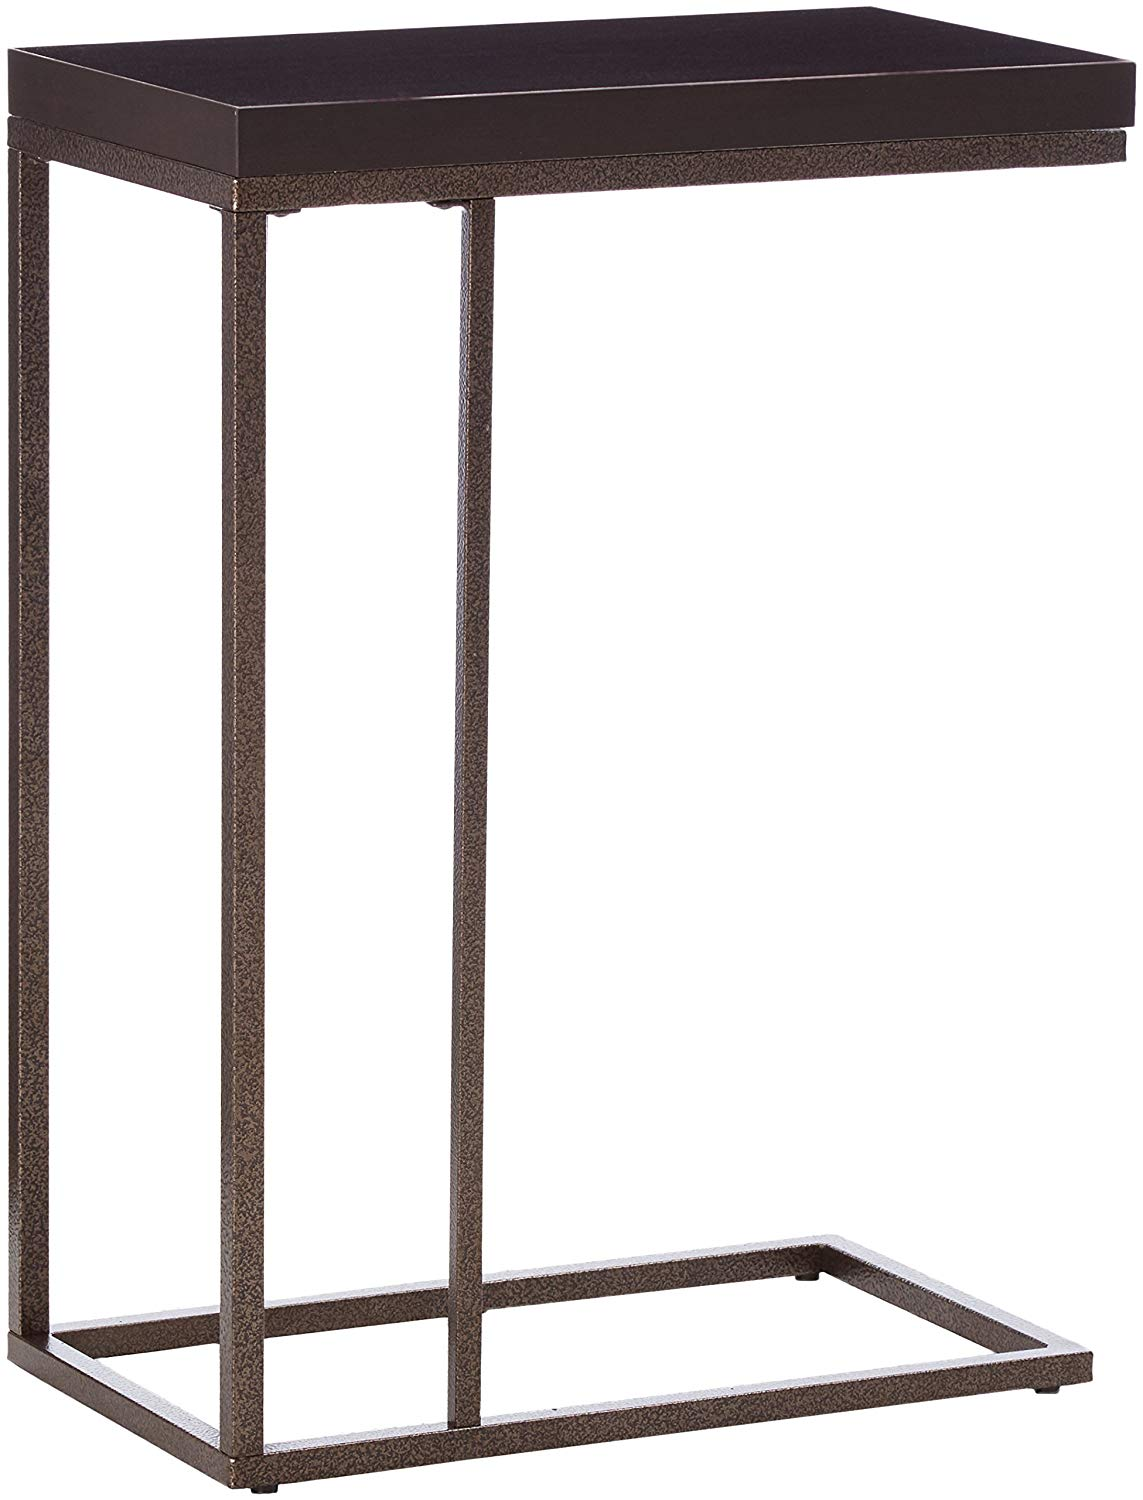 monarch specialties accent table bronze metal tables cappuccino kitchen dining formal living room furniture concrete console gray and white coffee modern marble top pottery barn